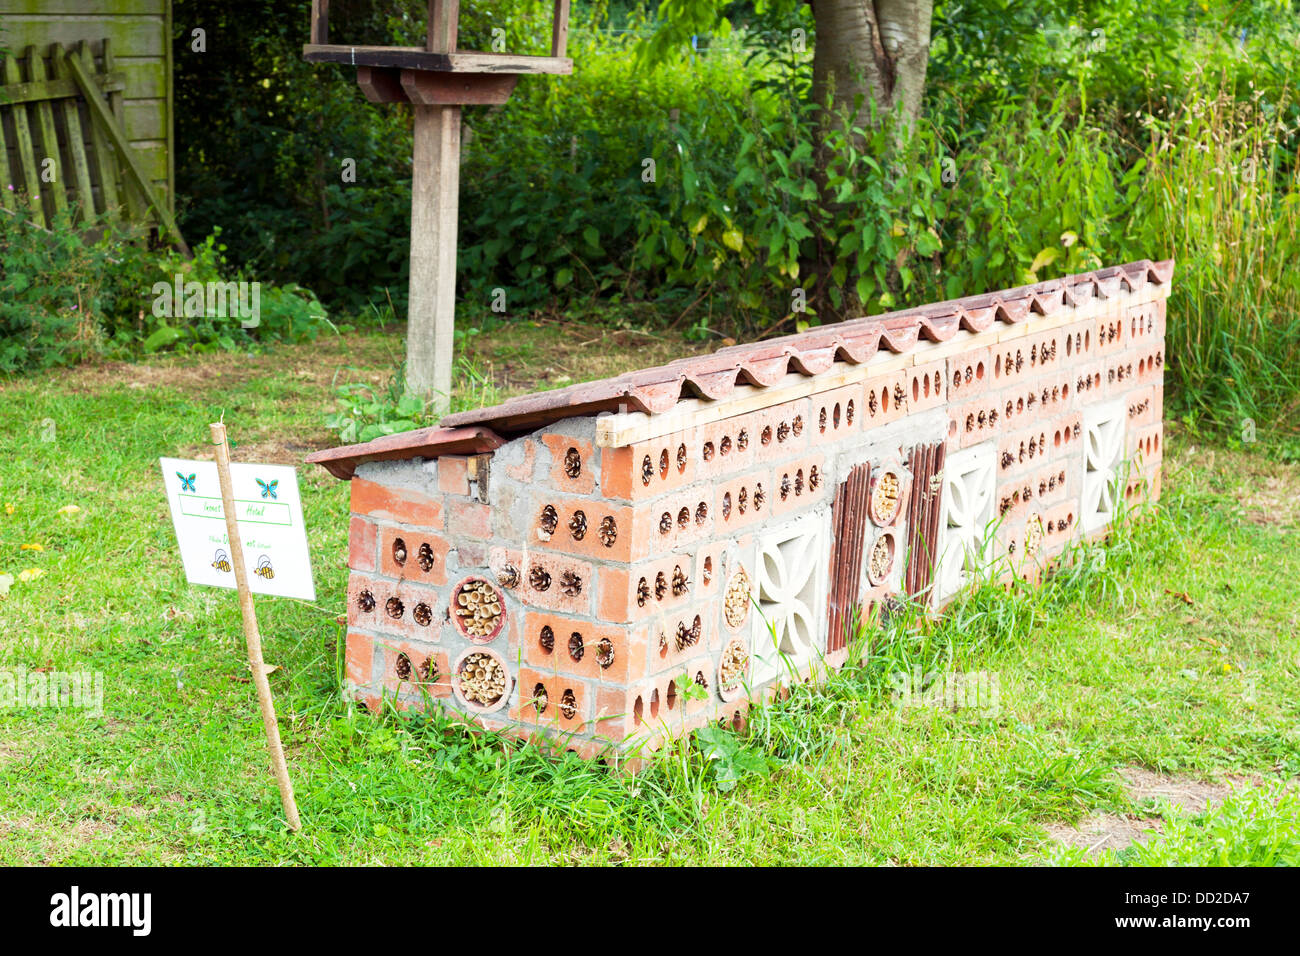 Purpose made insect hotel to harbor creepy crawlies and a place for them to call home and shelter - Stock Image